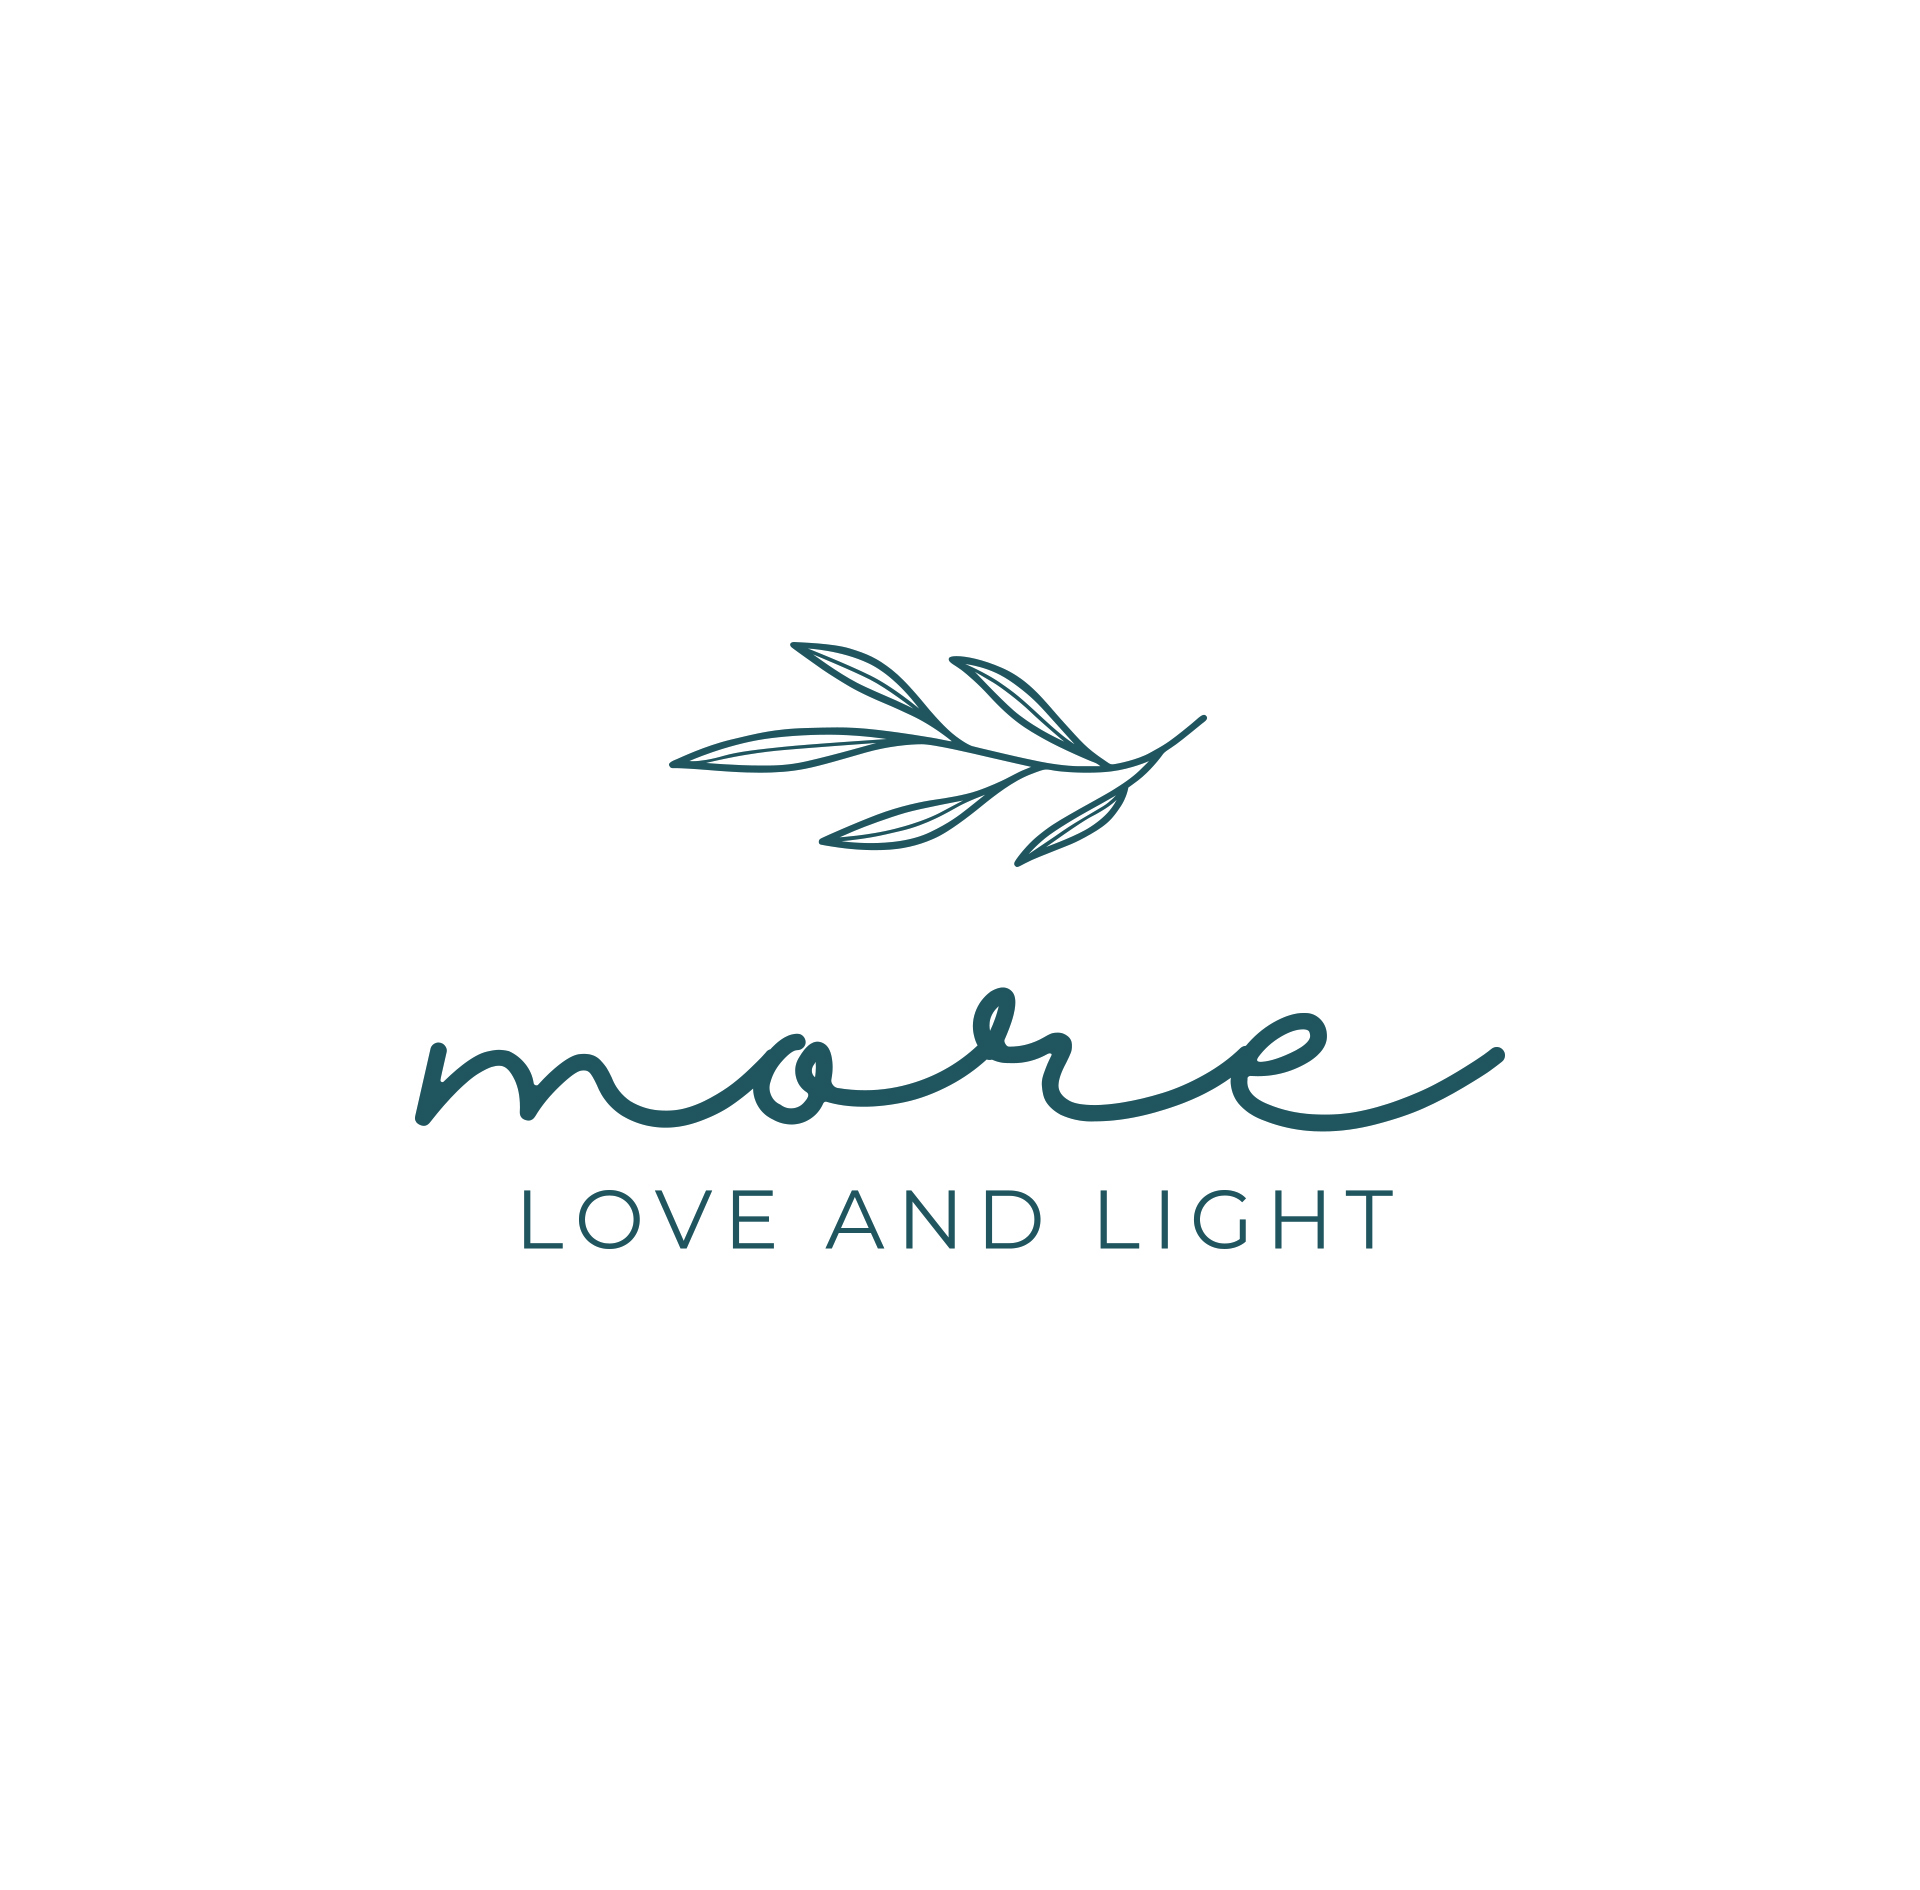 More Love and Light